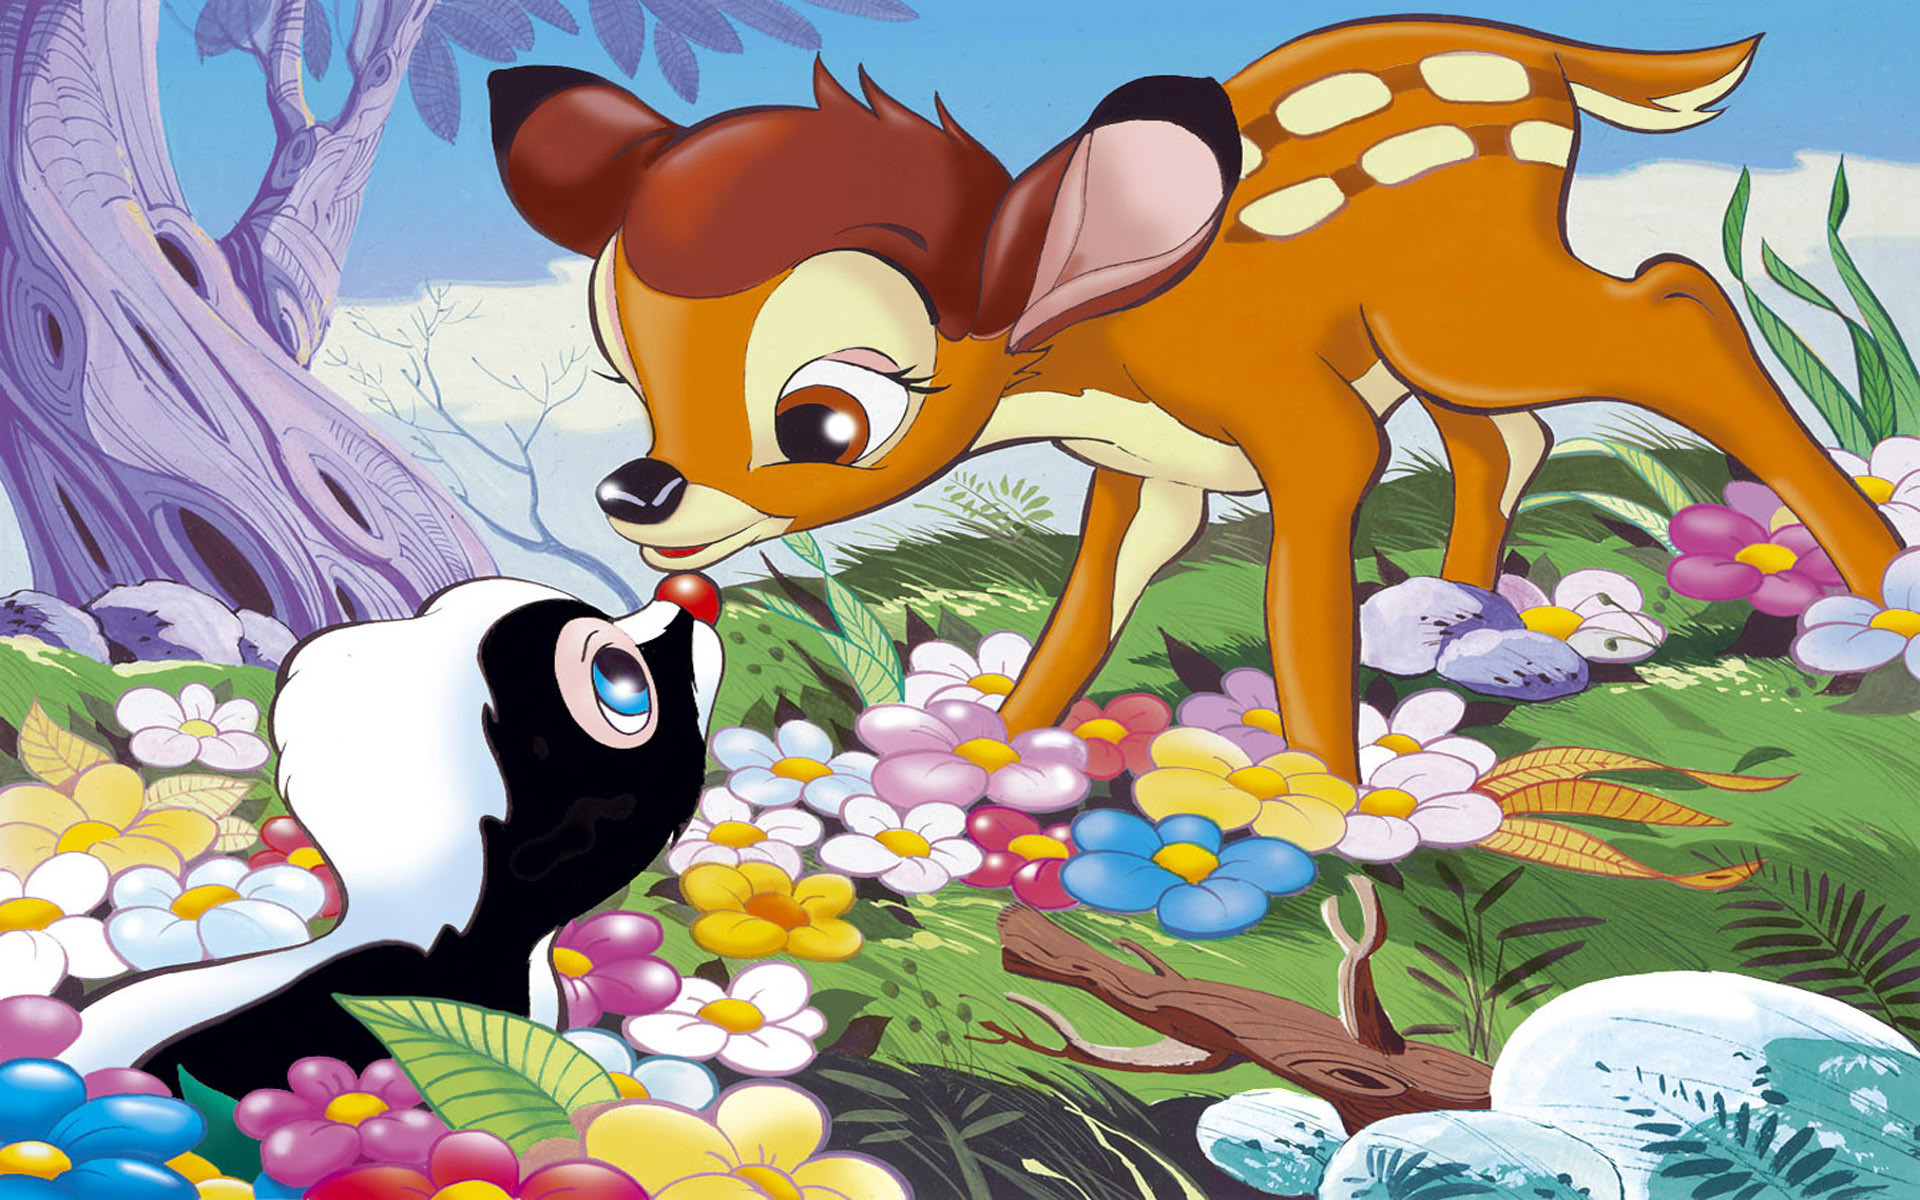 Res: 1920x1200, Getting To Know Bambi Wit.